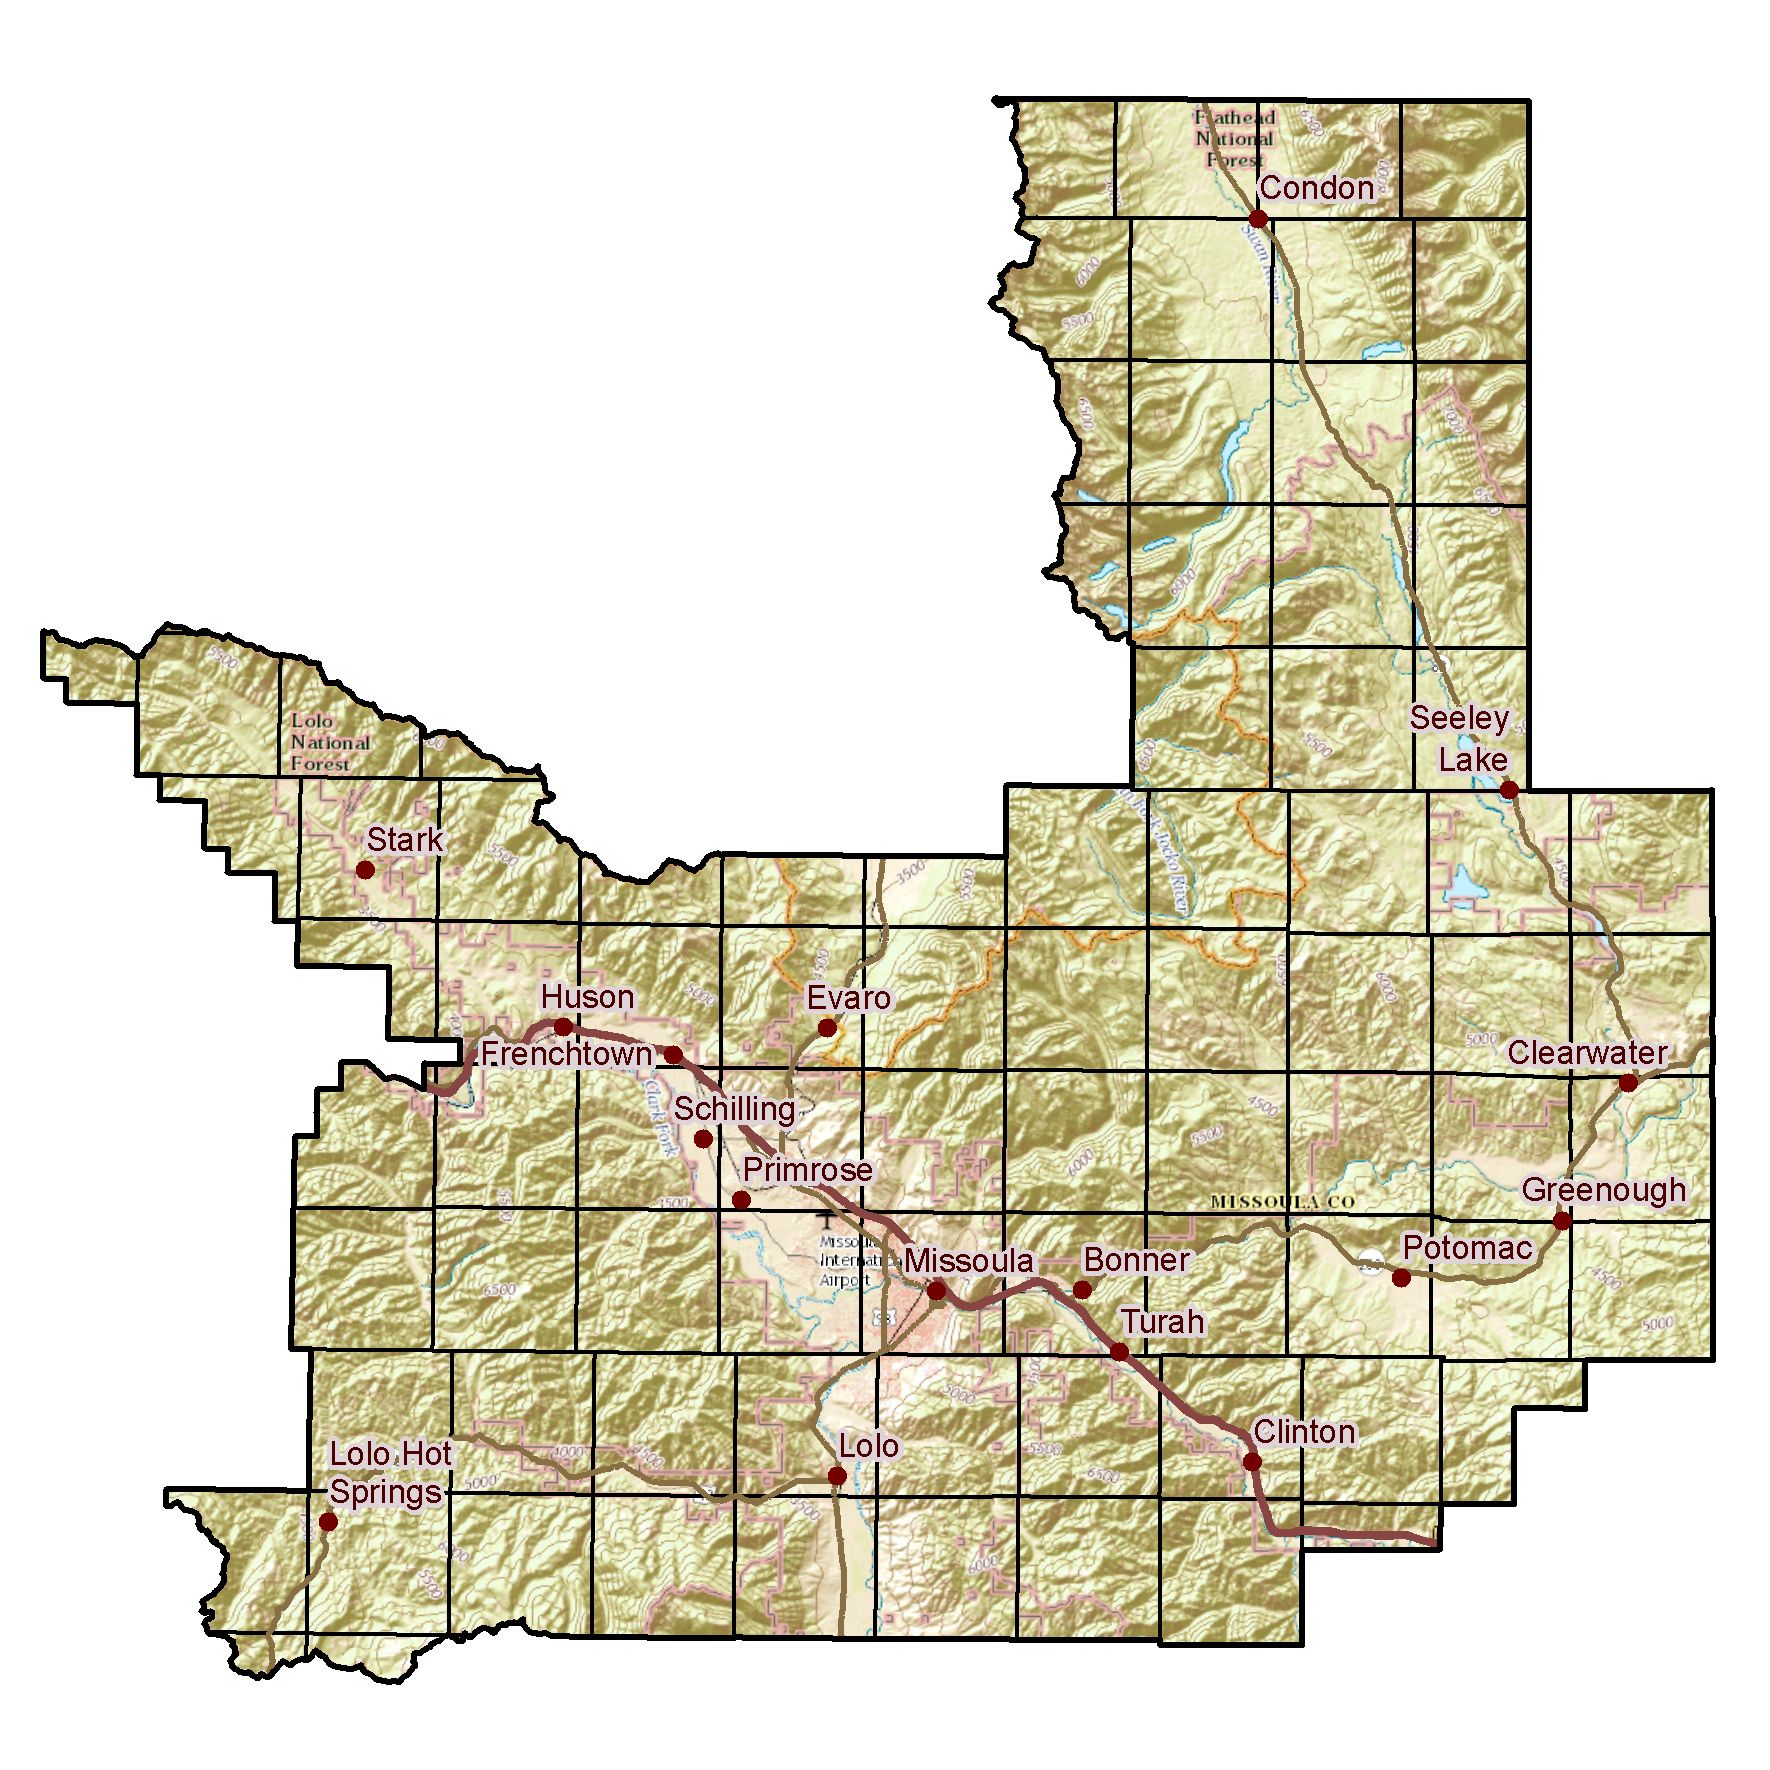 Map of Missoula County displaying Public Land Survey System (PLSS) Townships